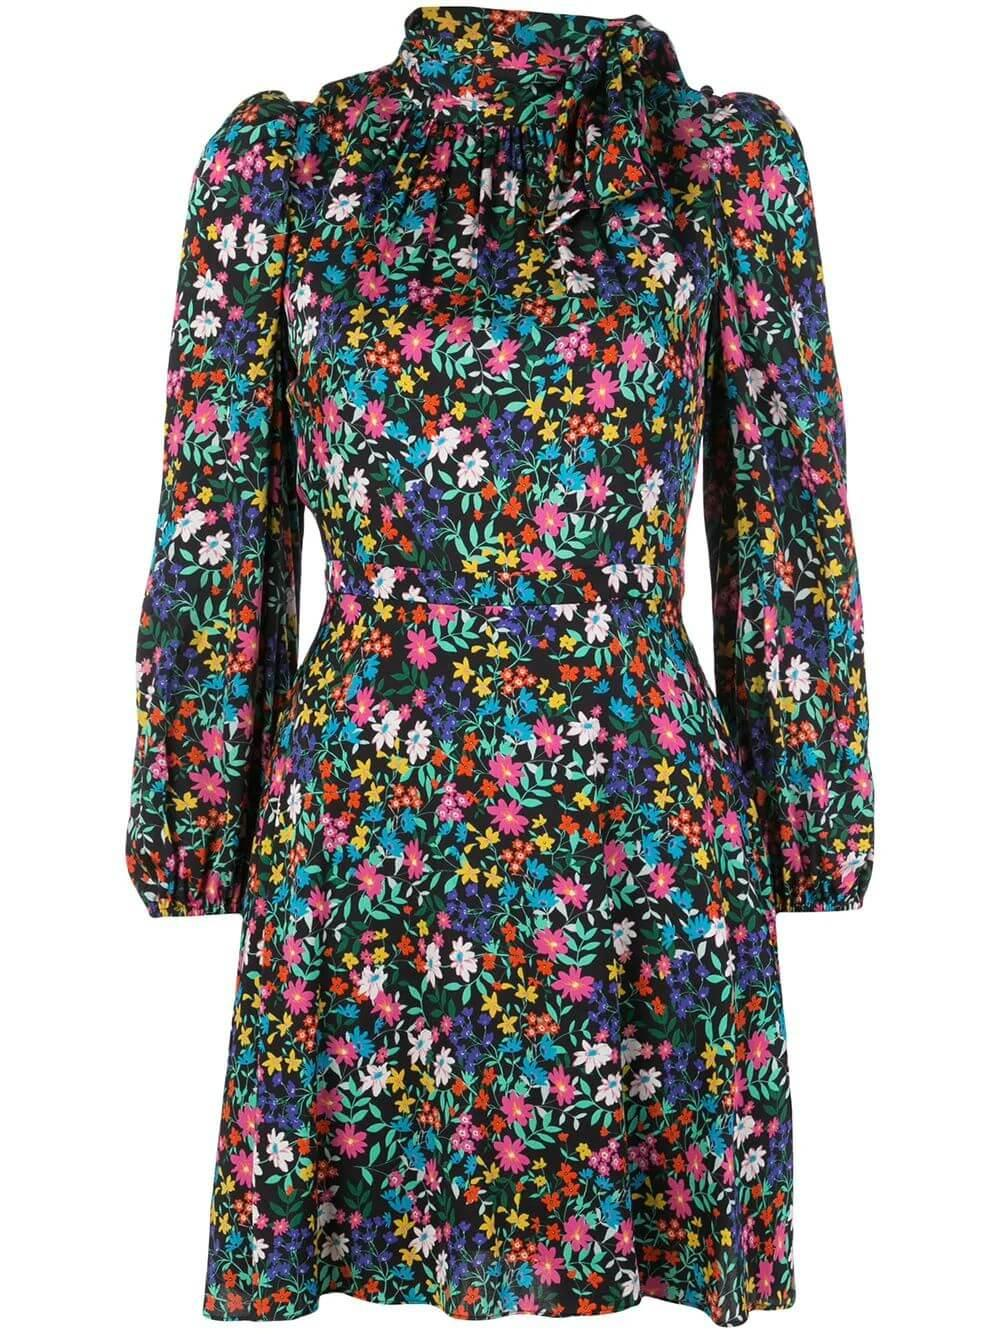 Garden Floral Stretch Silk Adele Dress